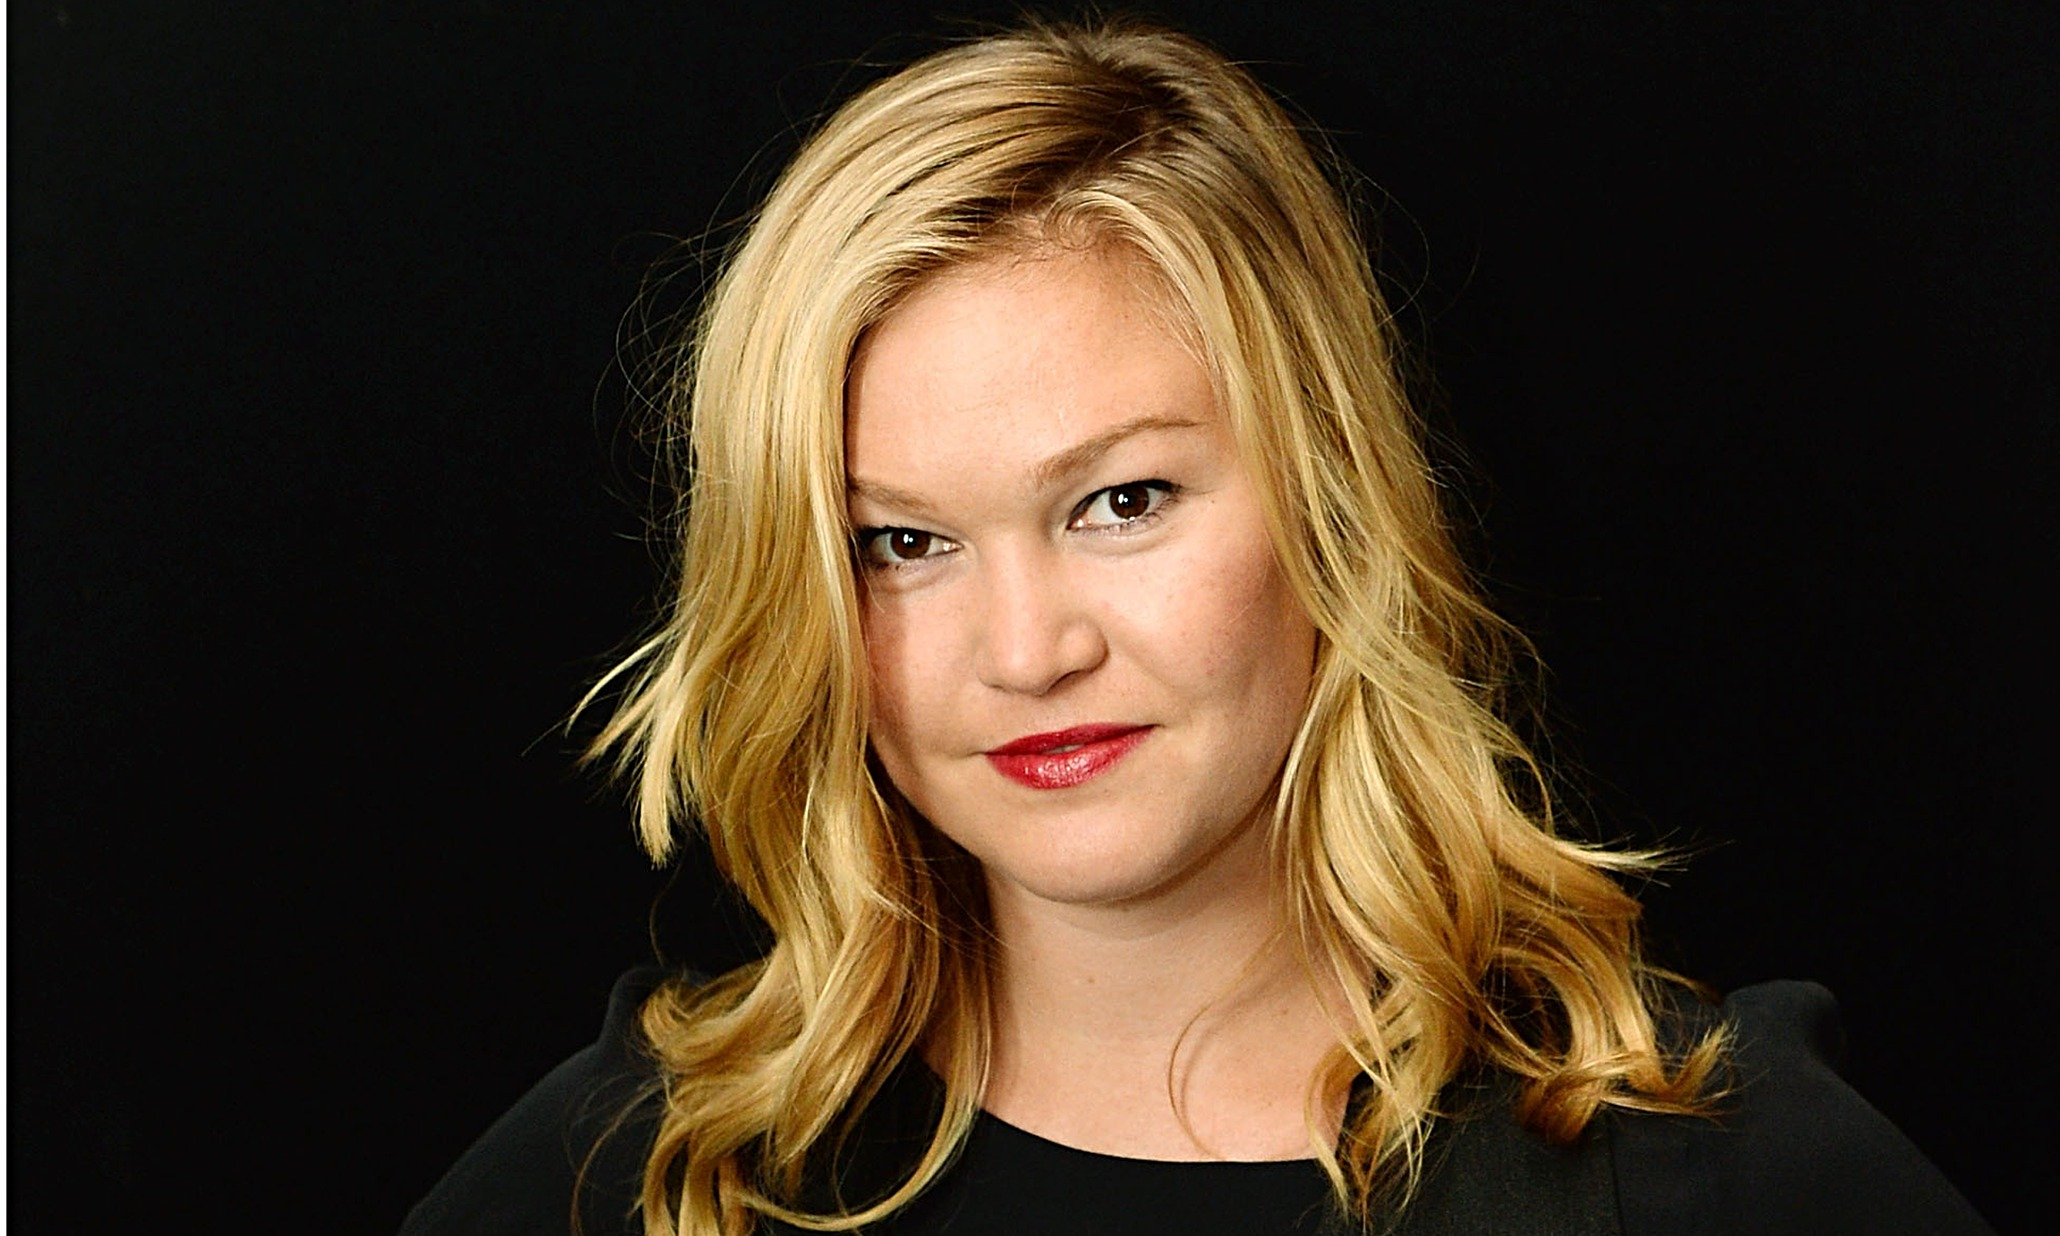 Julia Stiles Transgender